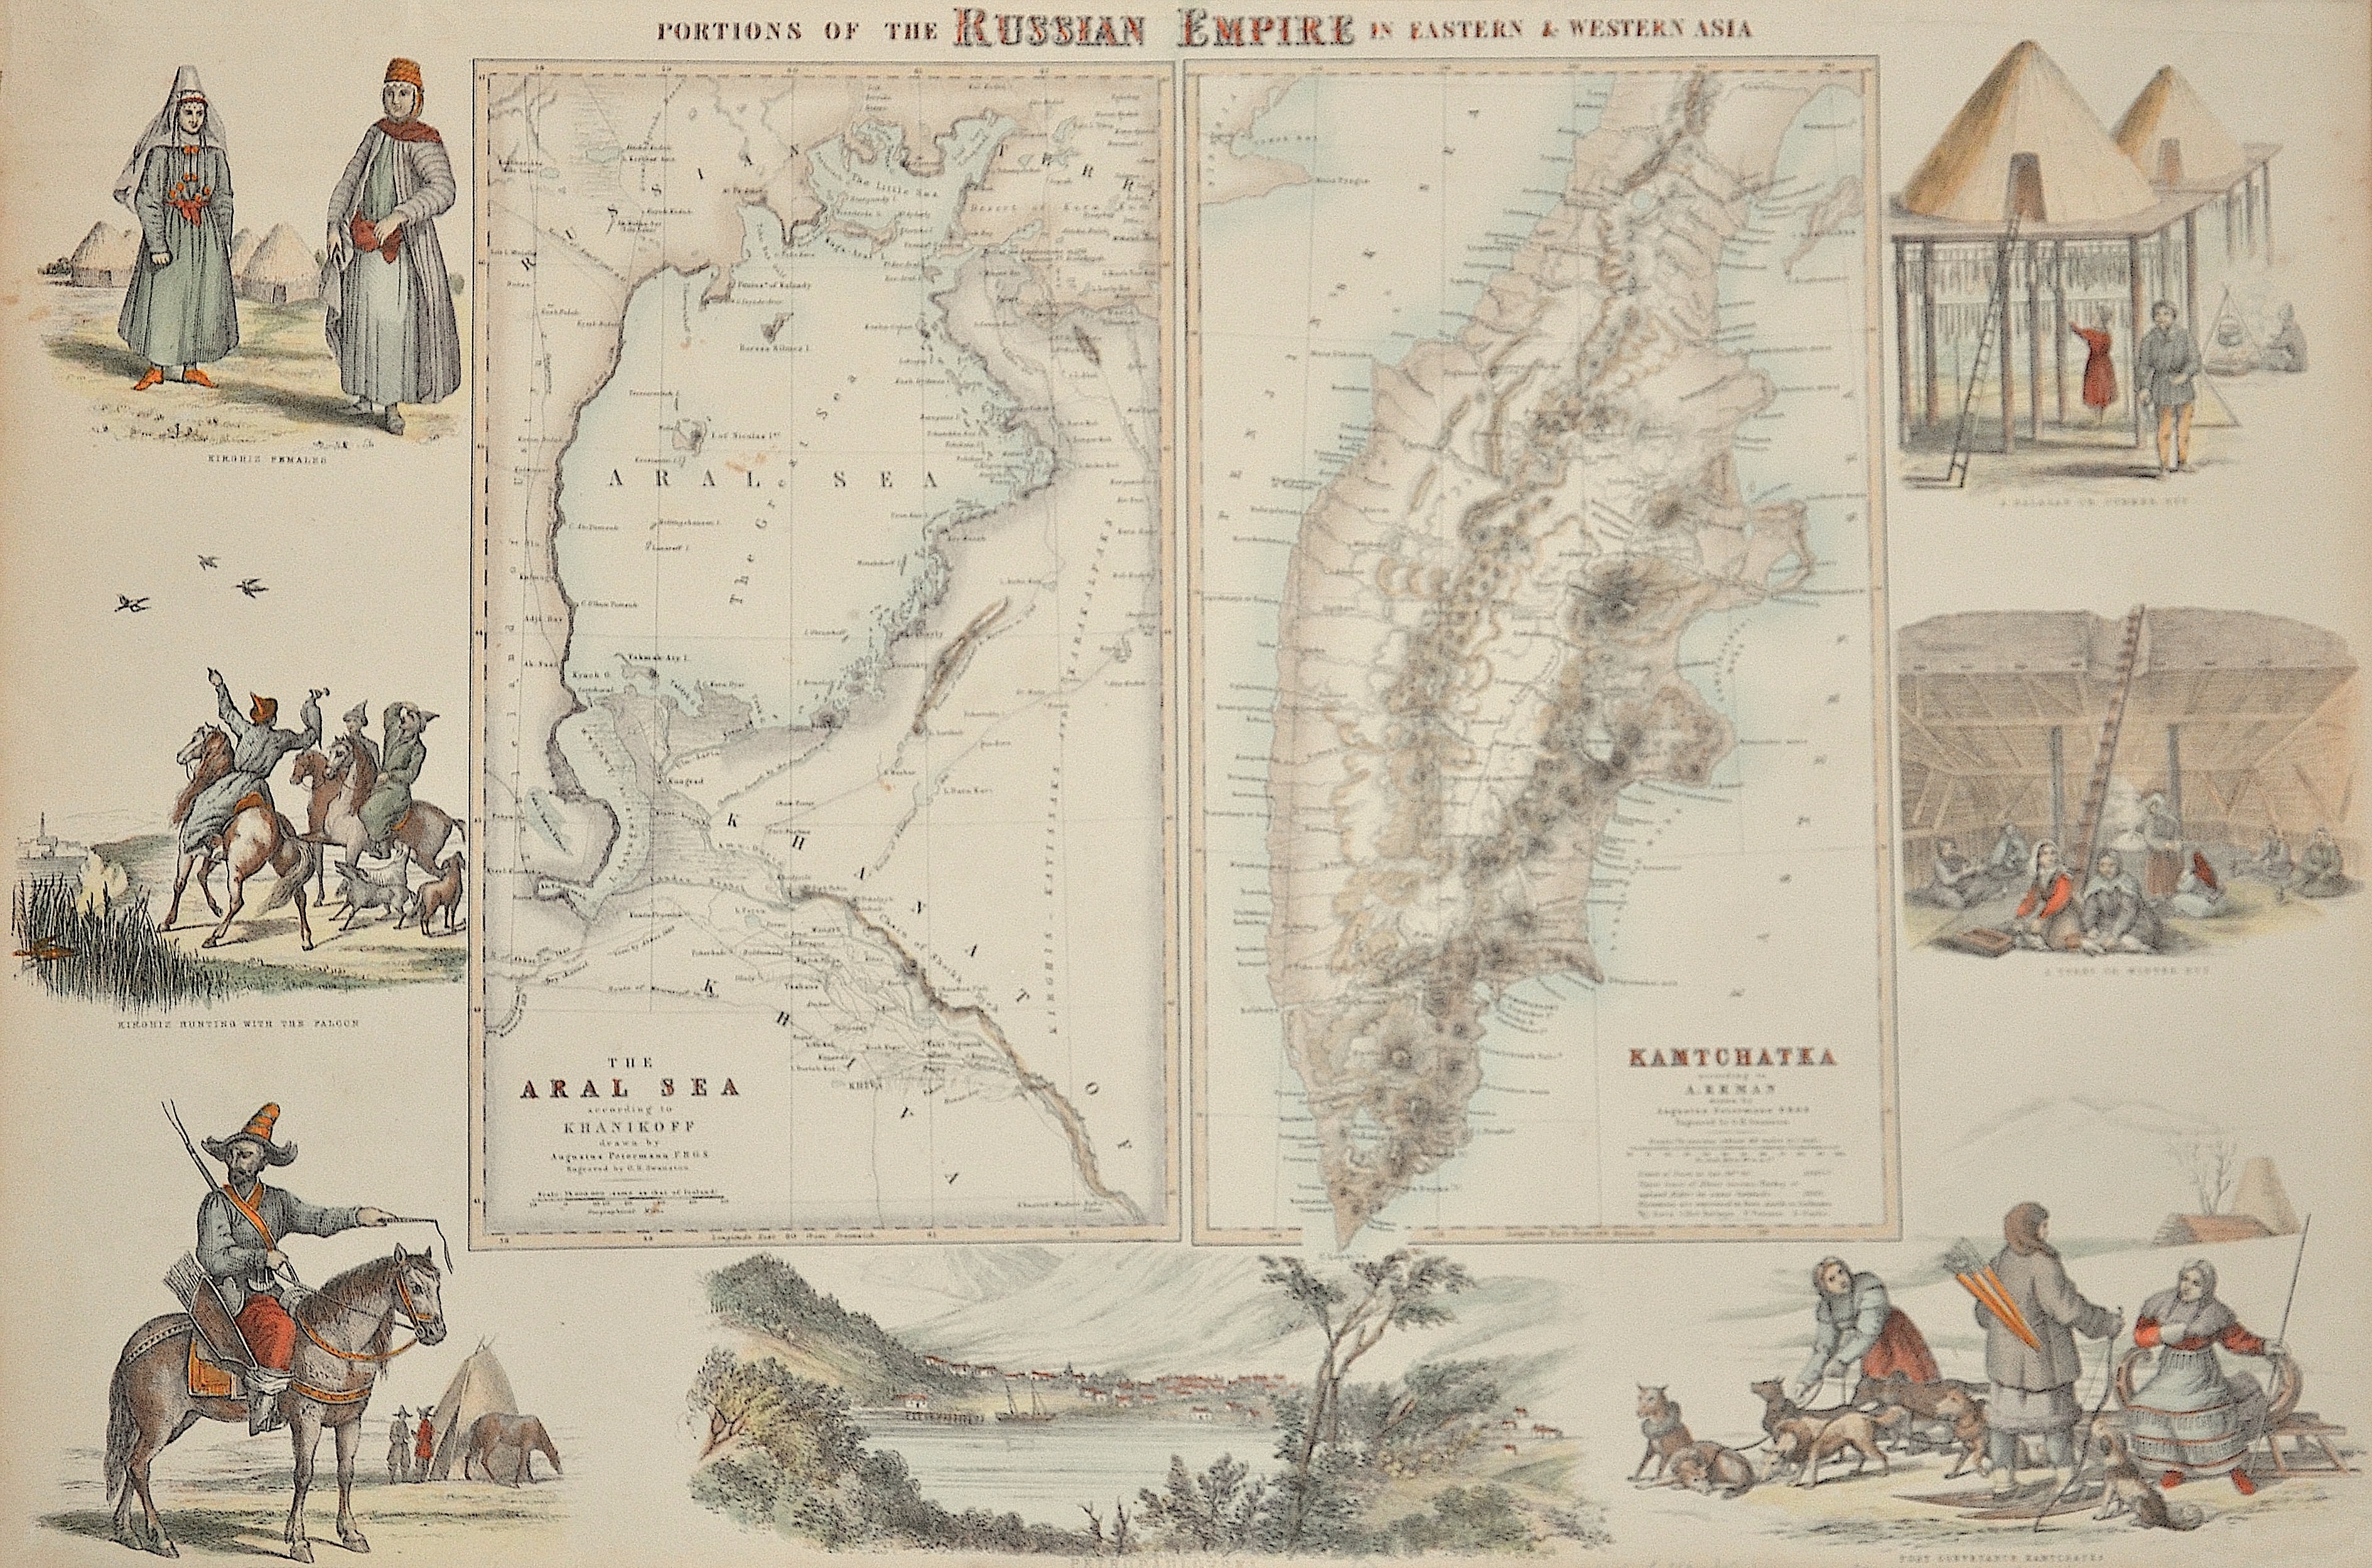 Swanston  Portions of the Russian empire in eastern u. western Asia/ The Aral sea / Kamtchatka